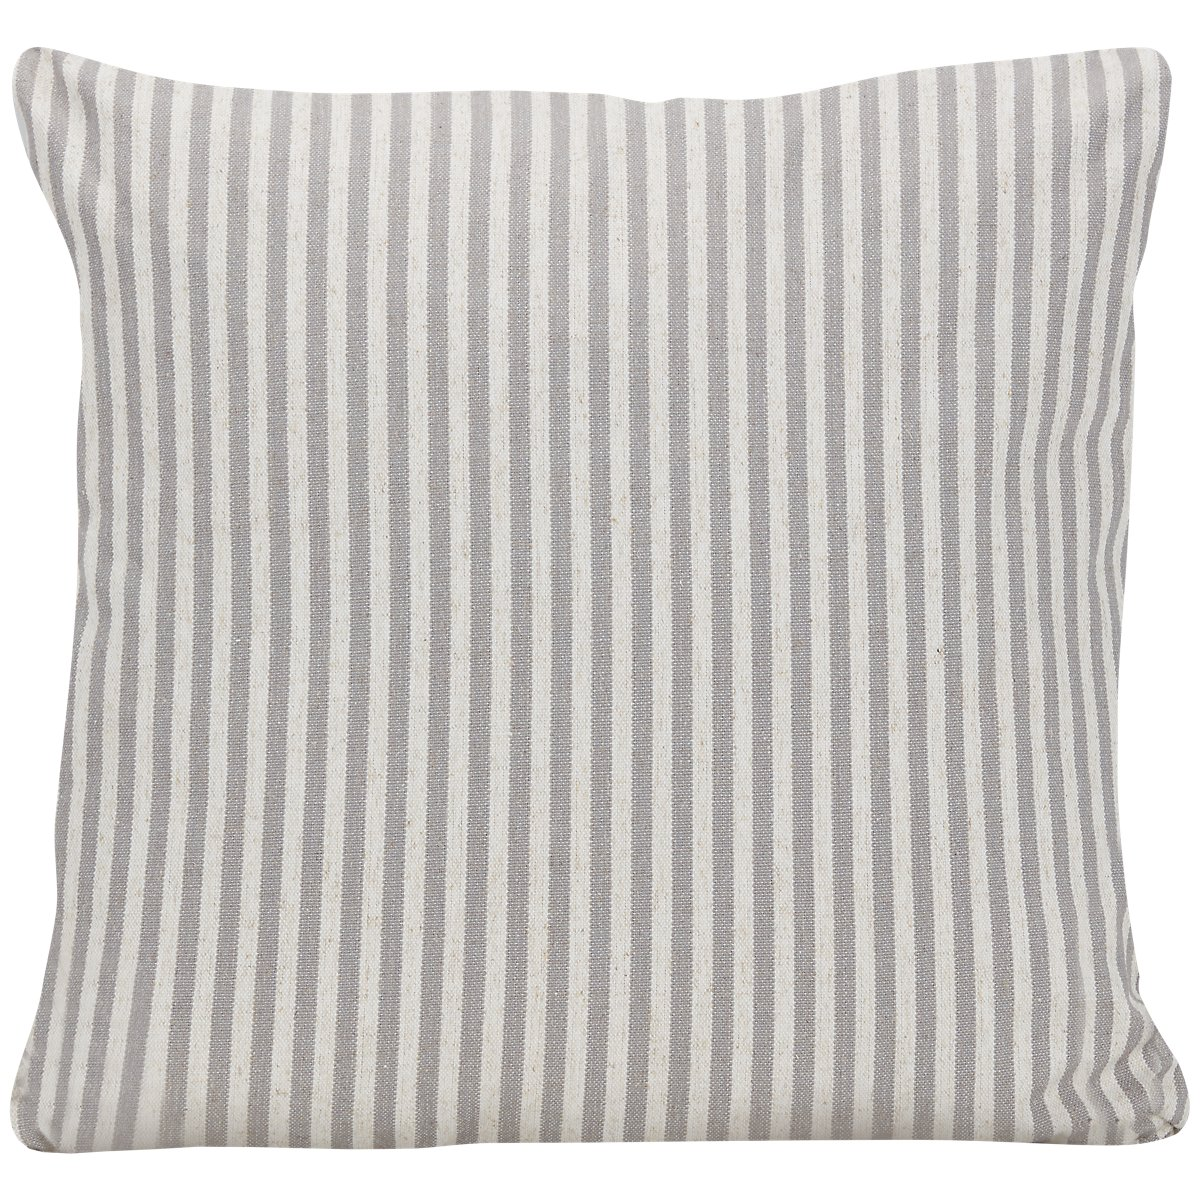 Scout Gray Fabric Stripe Square Accent Pillow